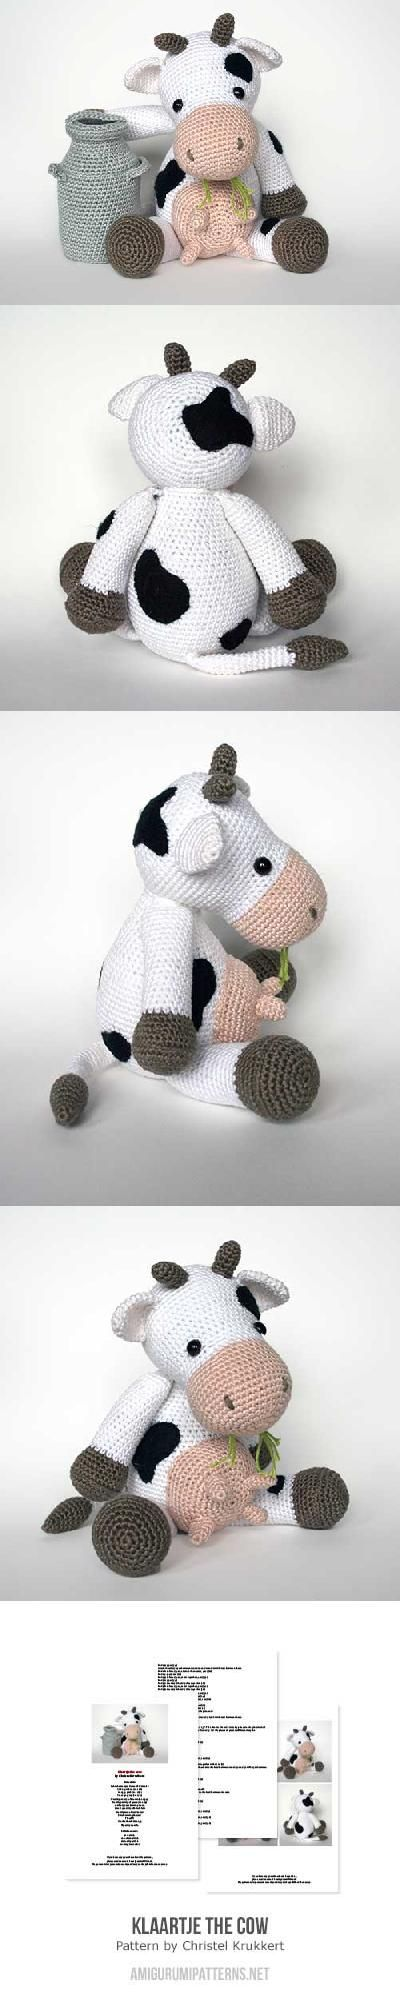 Klaartje The Cow Amigurumi Pattern                                                                                                                                                      More